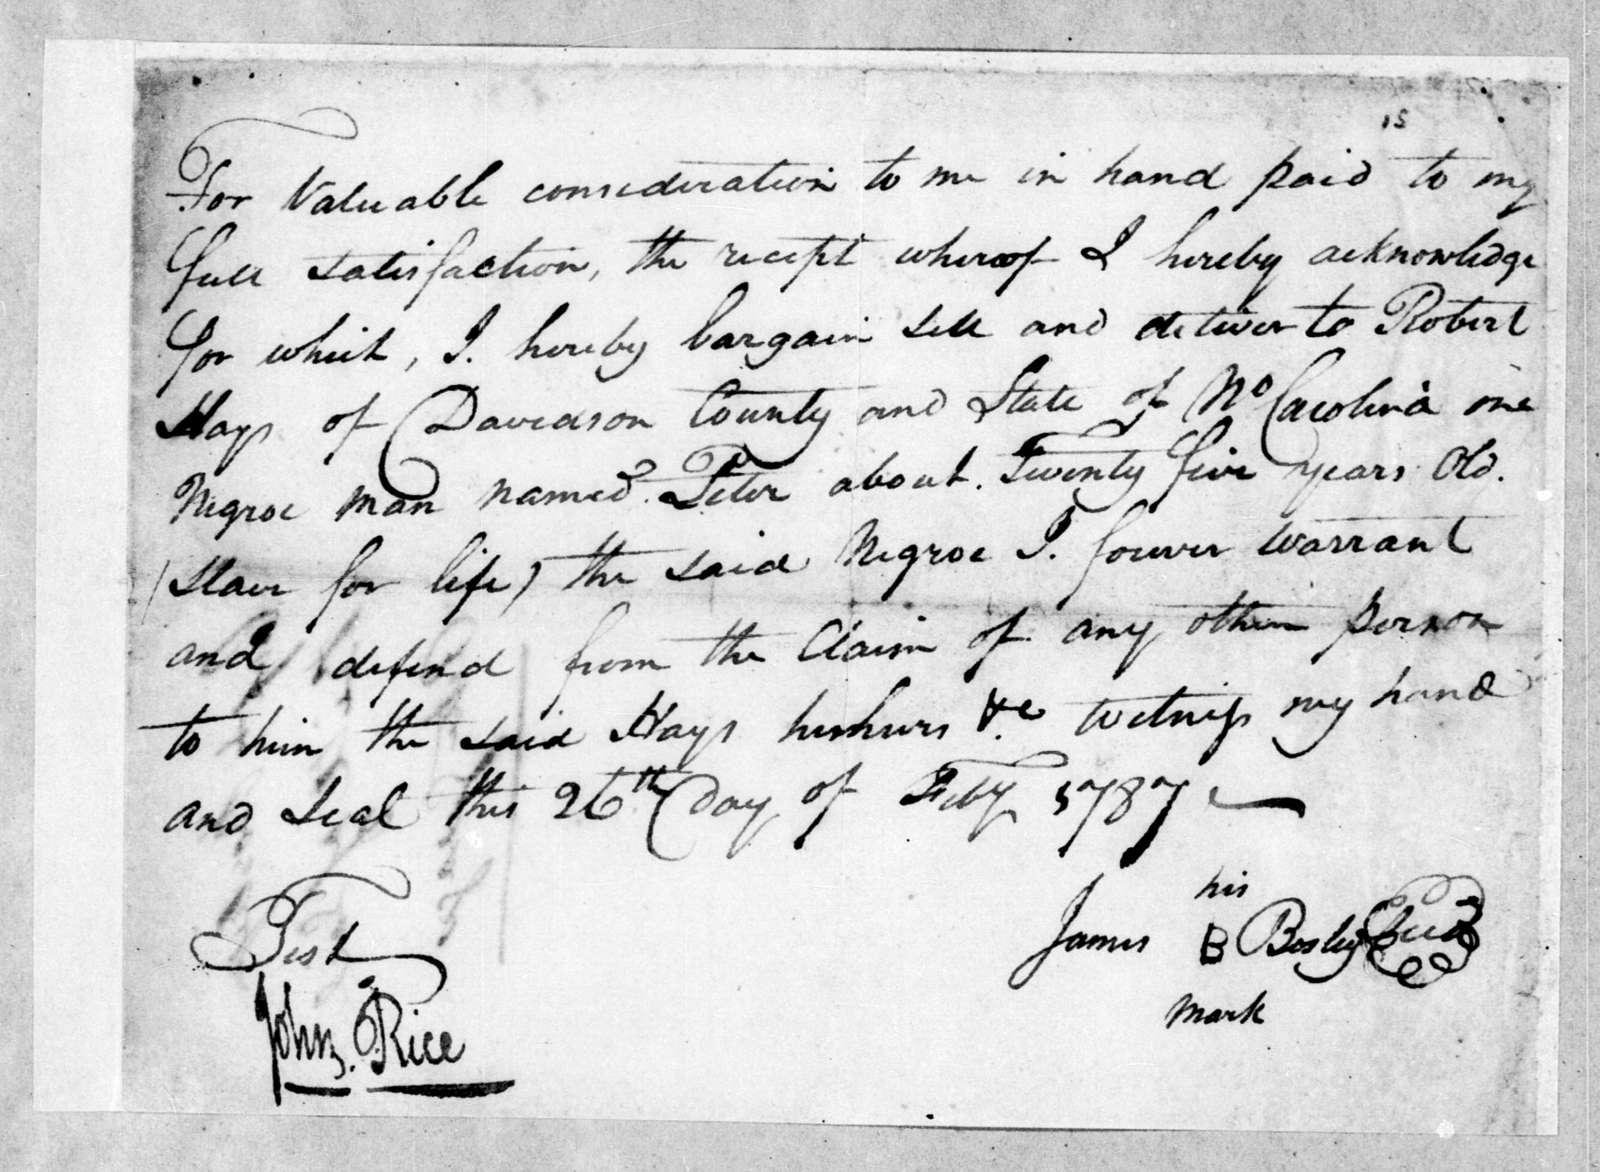 James Bosley to Robert Hays, February 26, 1787